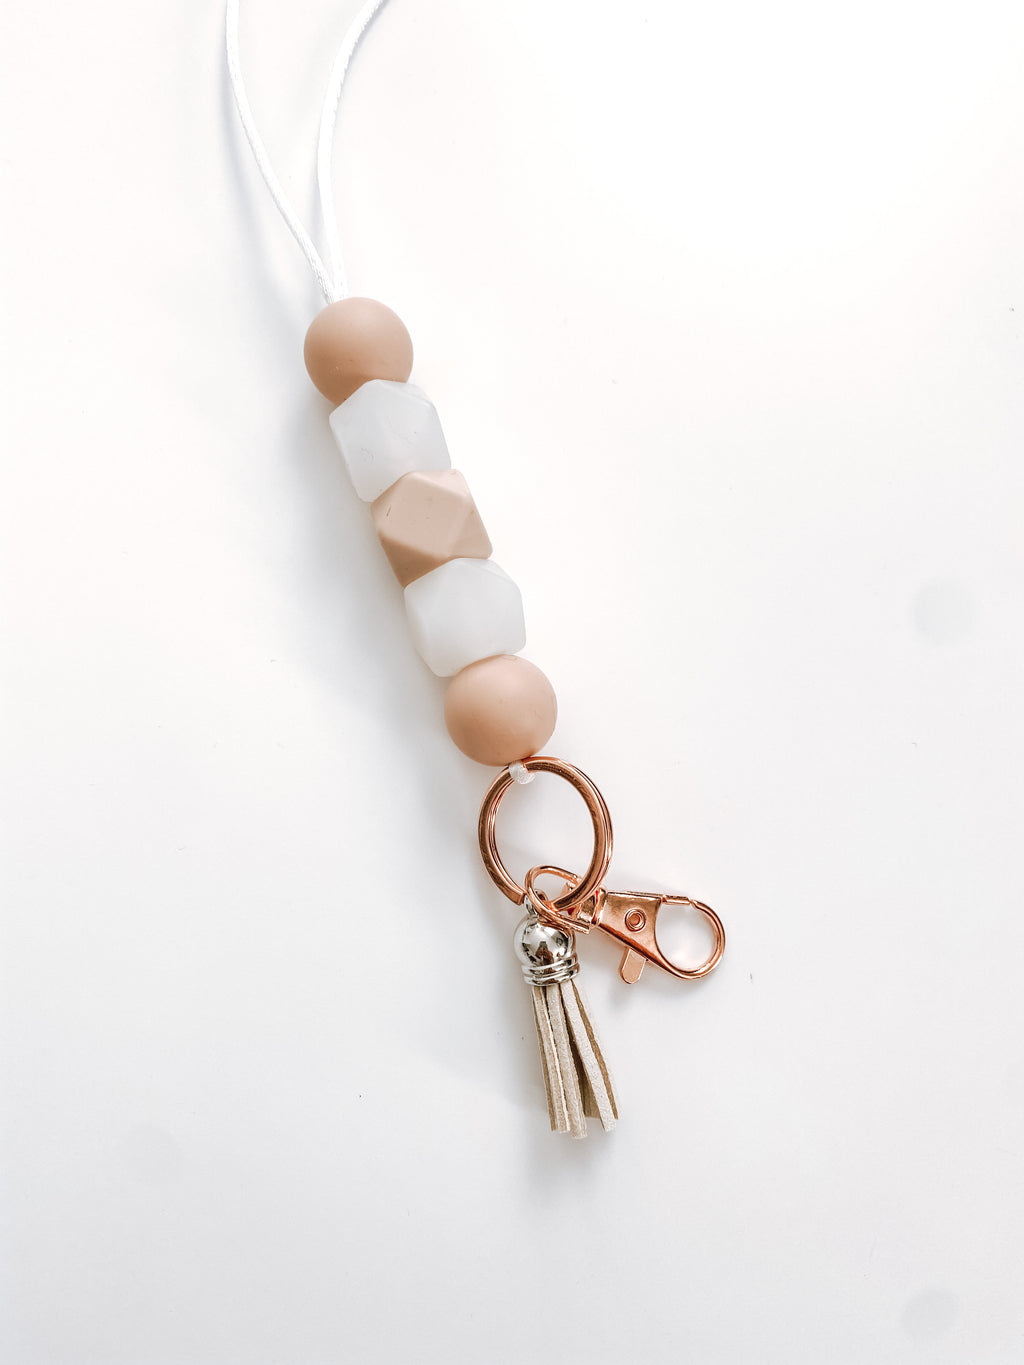 blush + clear with tassel // lanyard